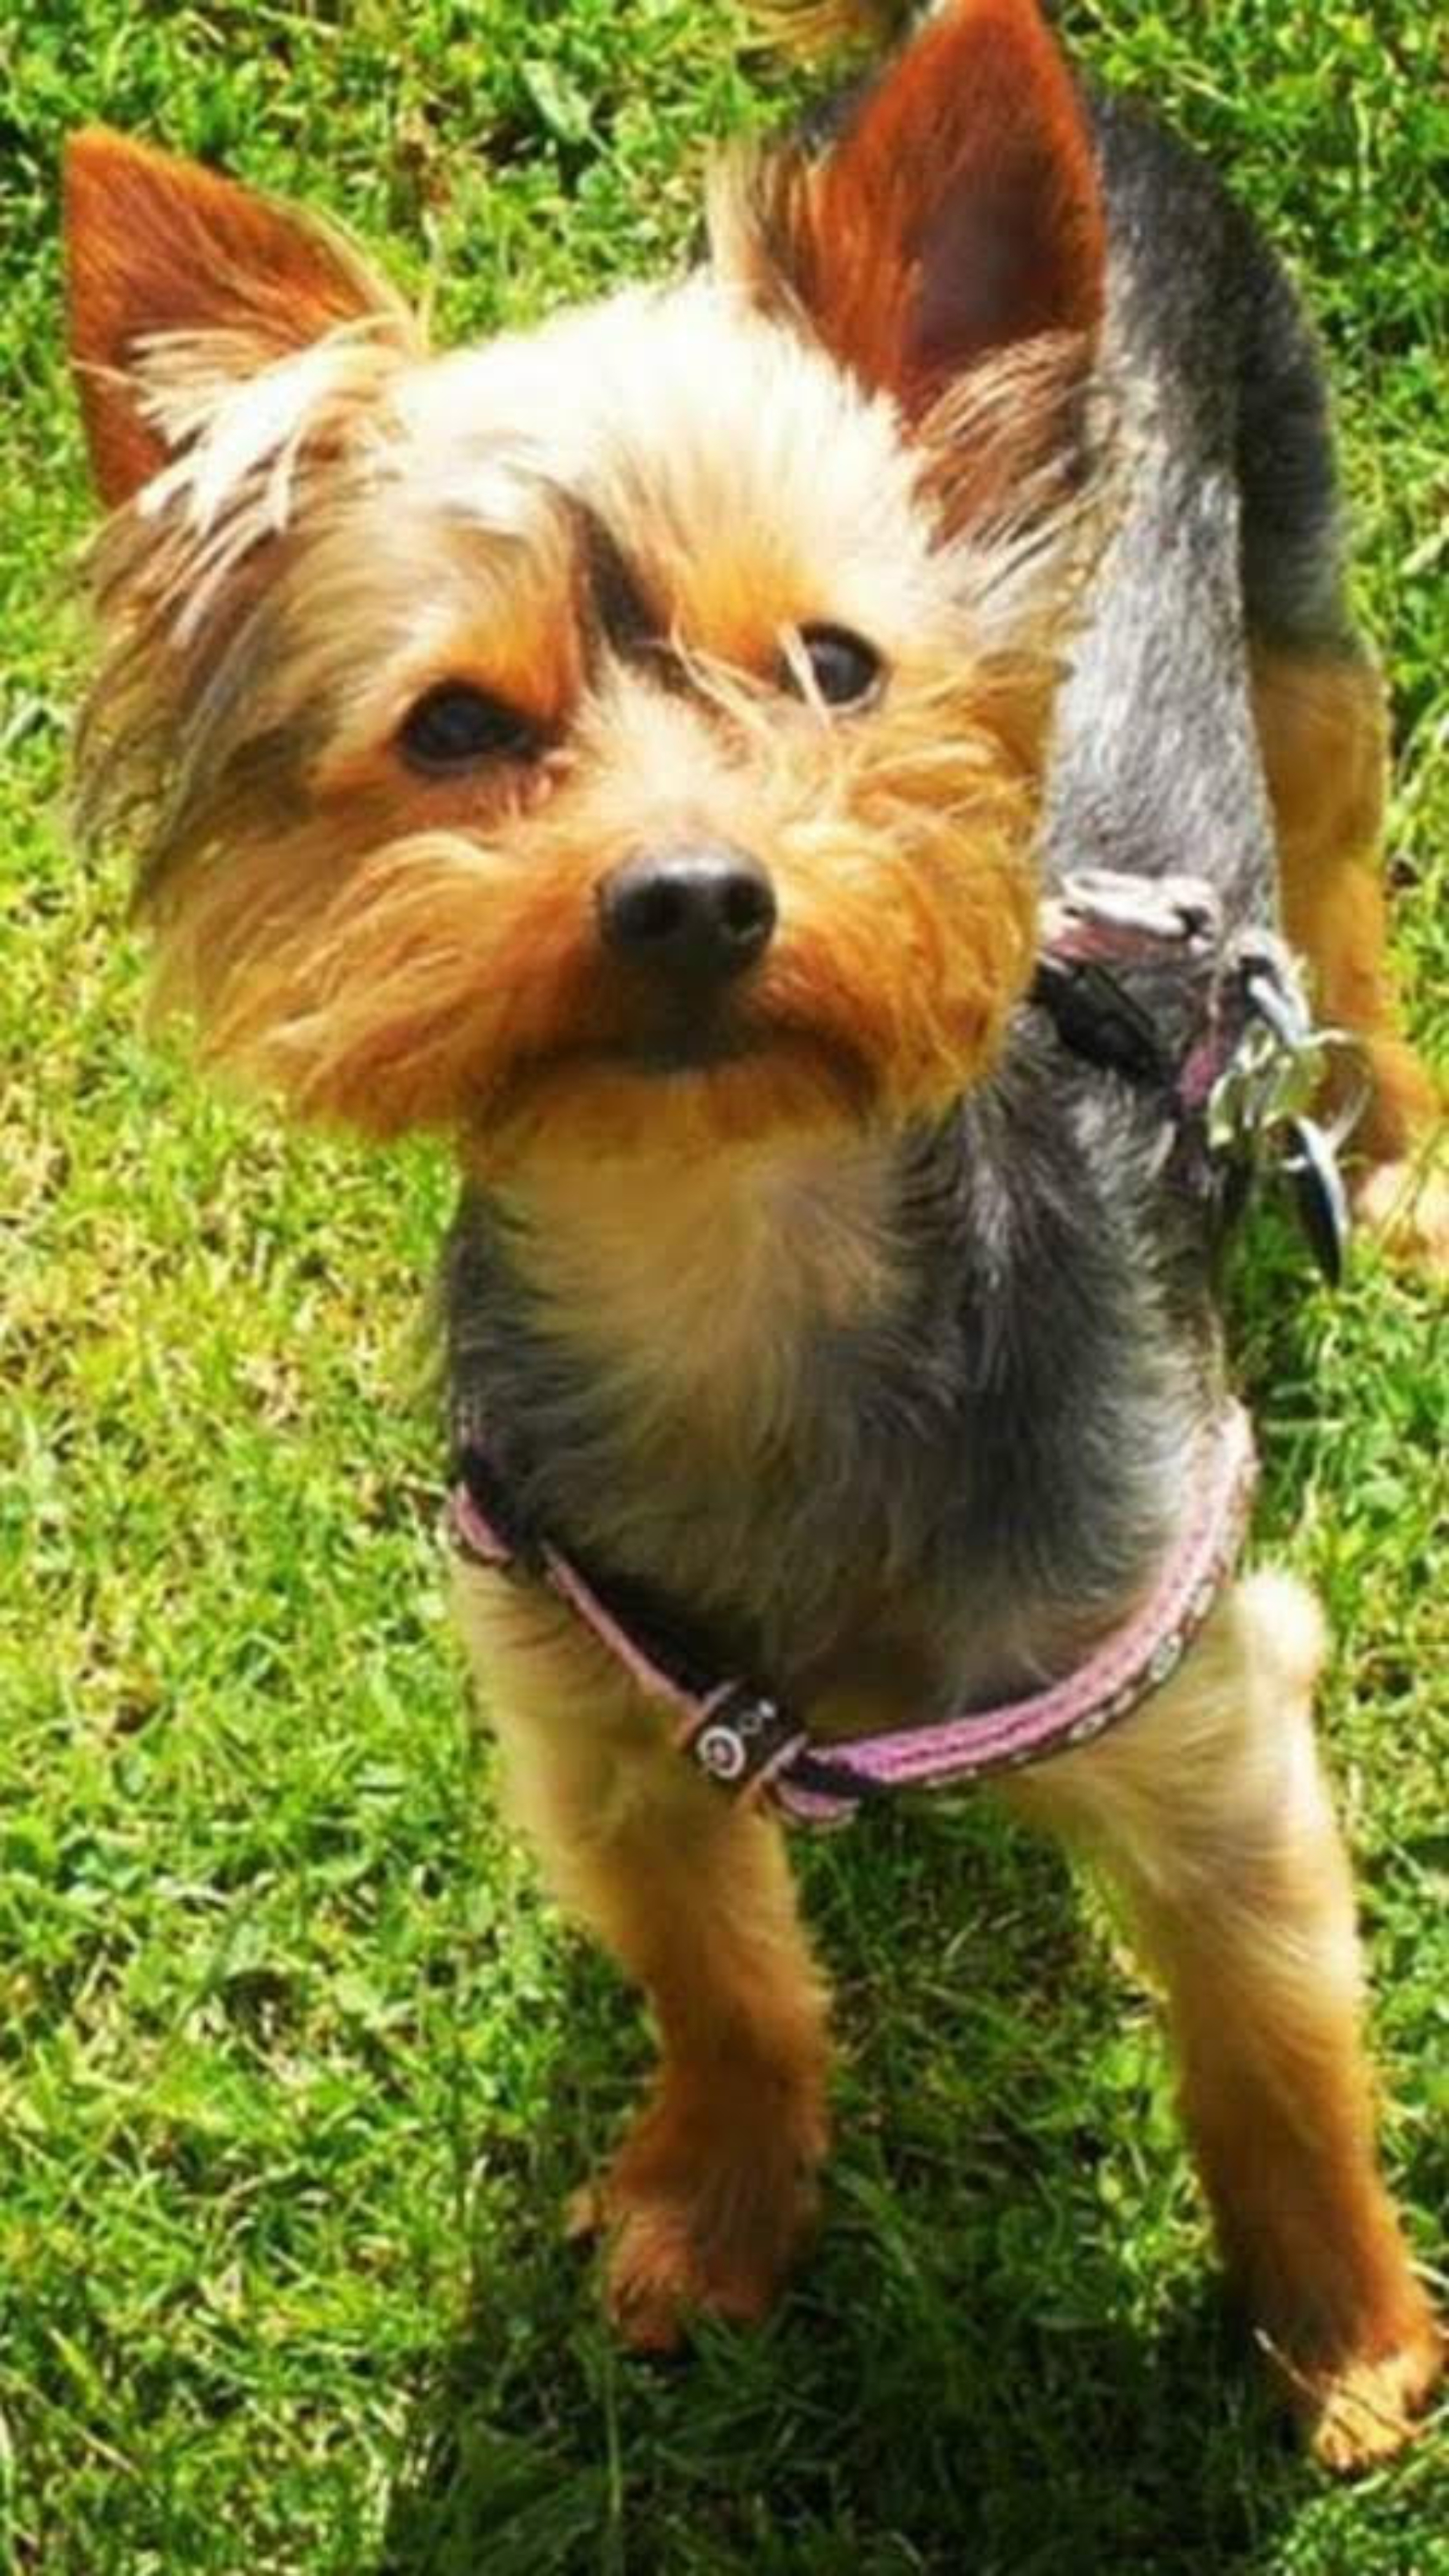 DogLost Appeal Missing Dogs Louie {DogLost} #Yorkshire Terrier #Louie #England #MissingDog #StolenDog #DogLost www.scruffylittleterrier.com